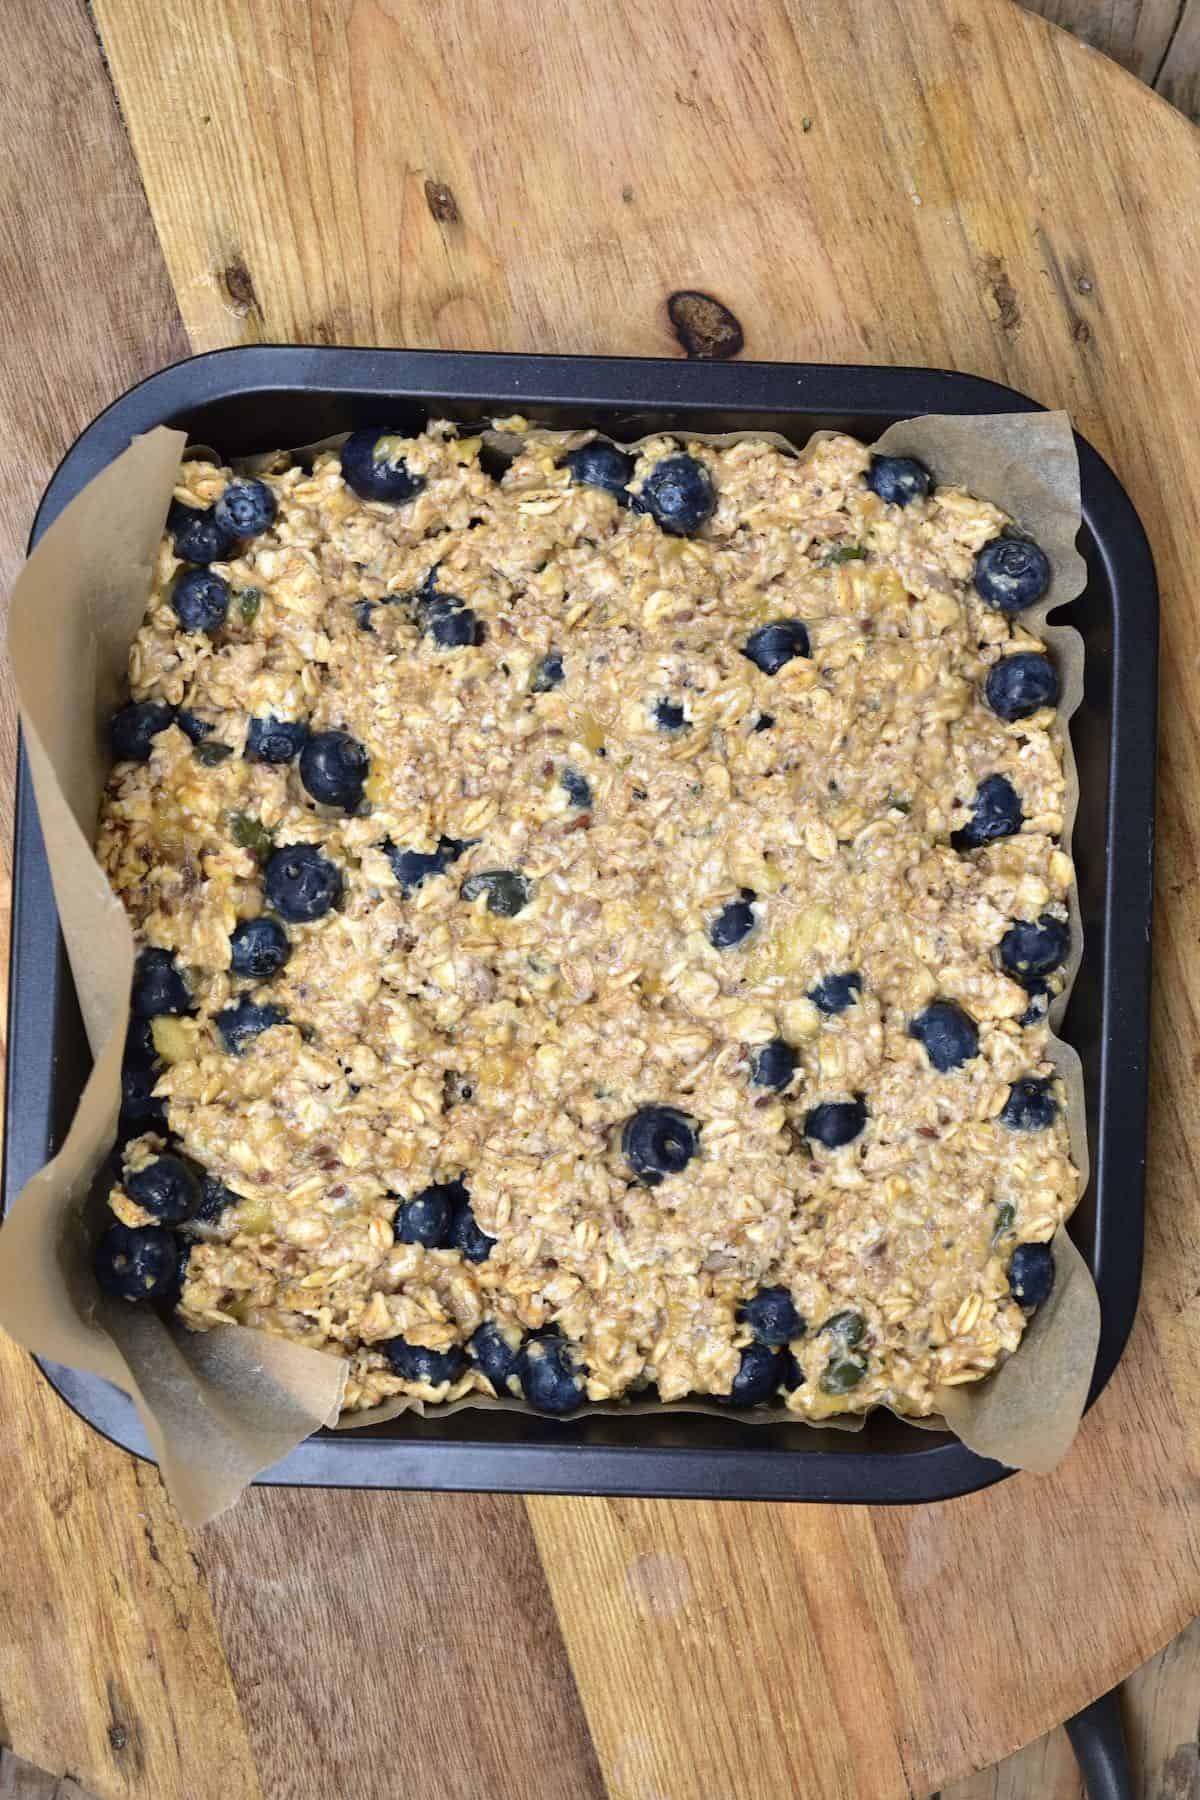 Blueberry oat mix put in a baking tray